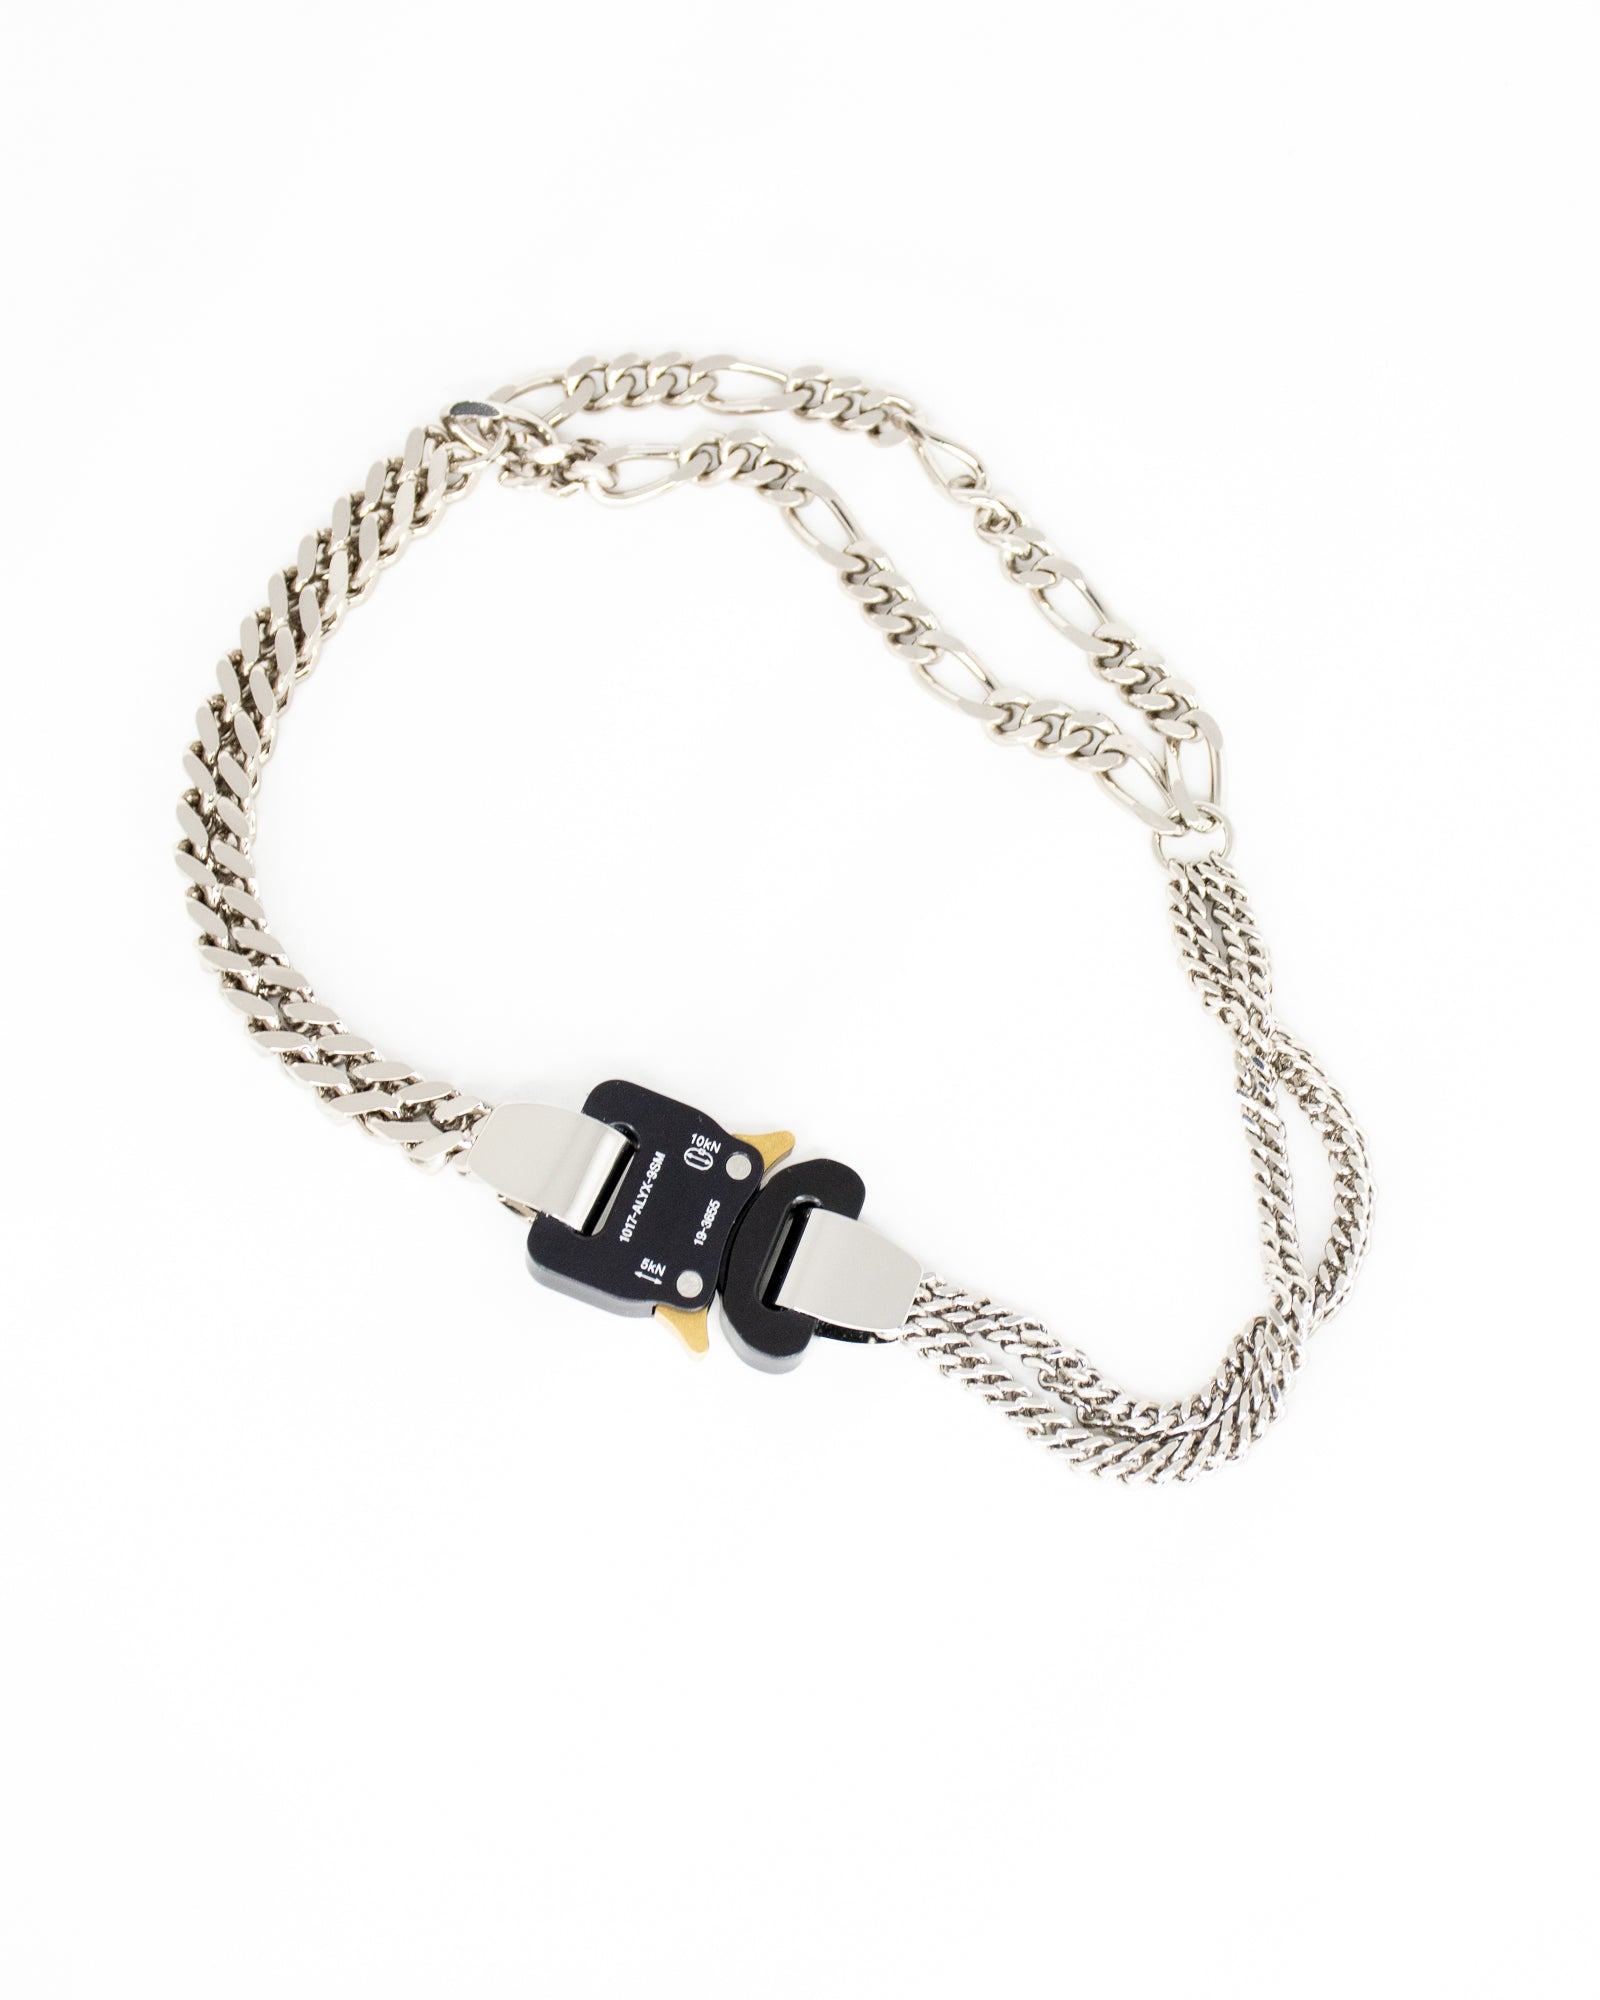 ALYX TRIPLE CUBIX CHAIN NECKLACE